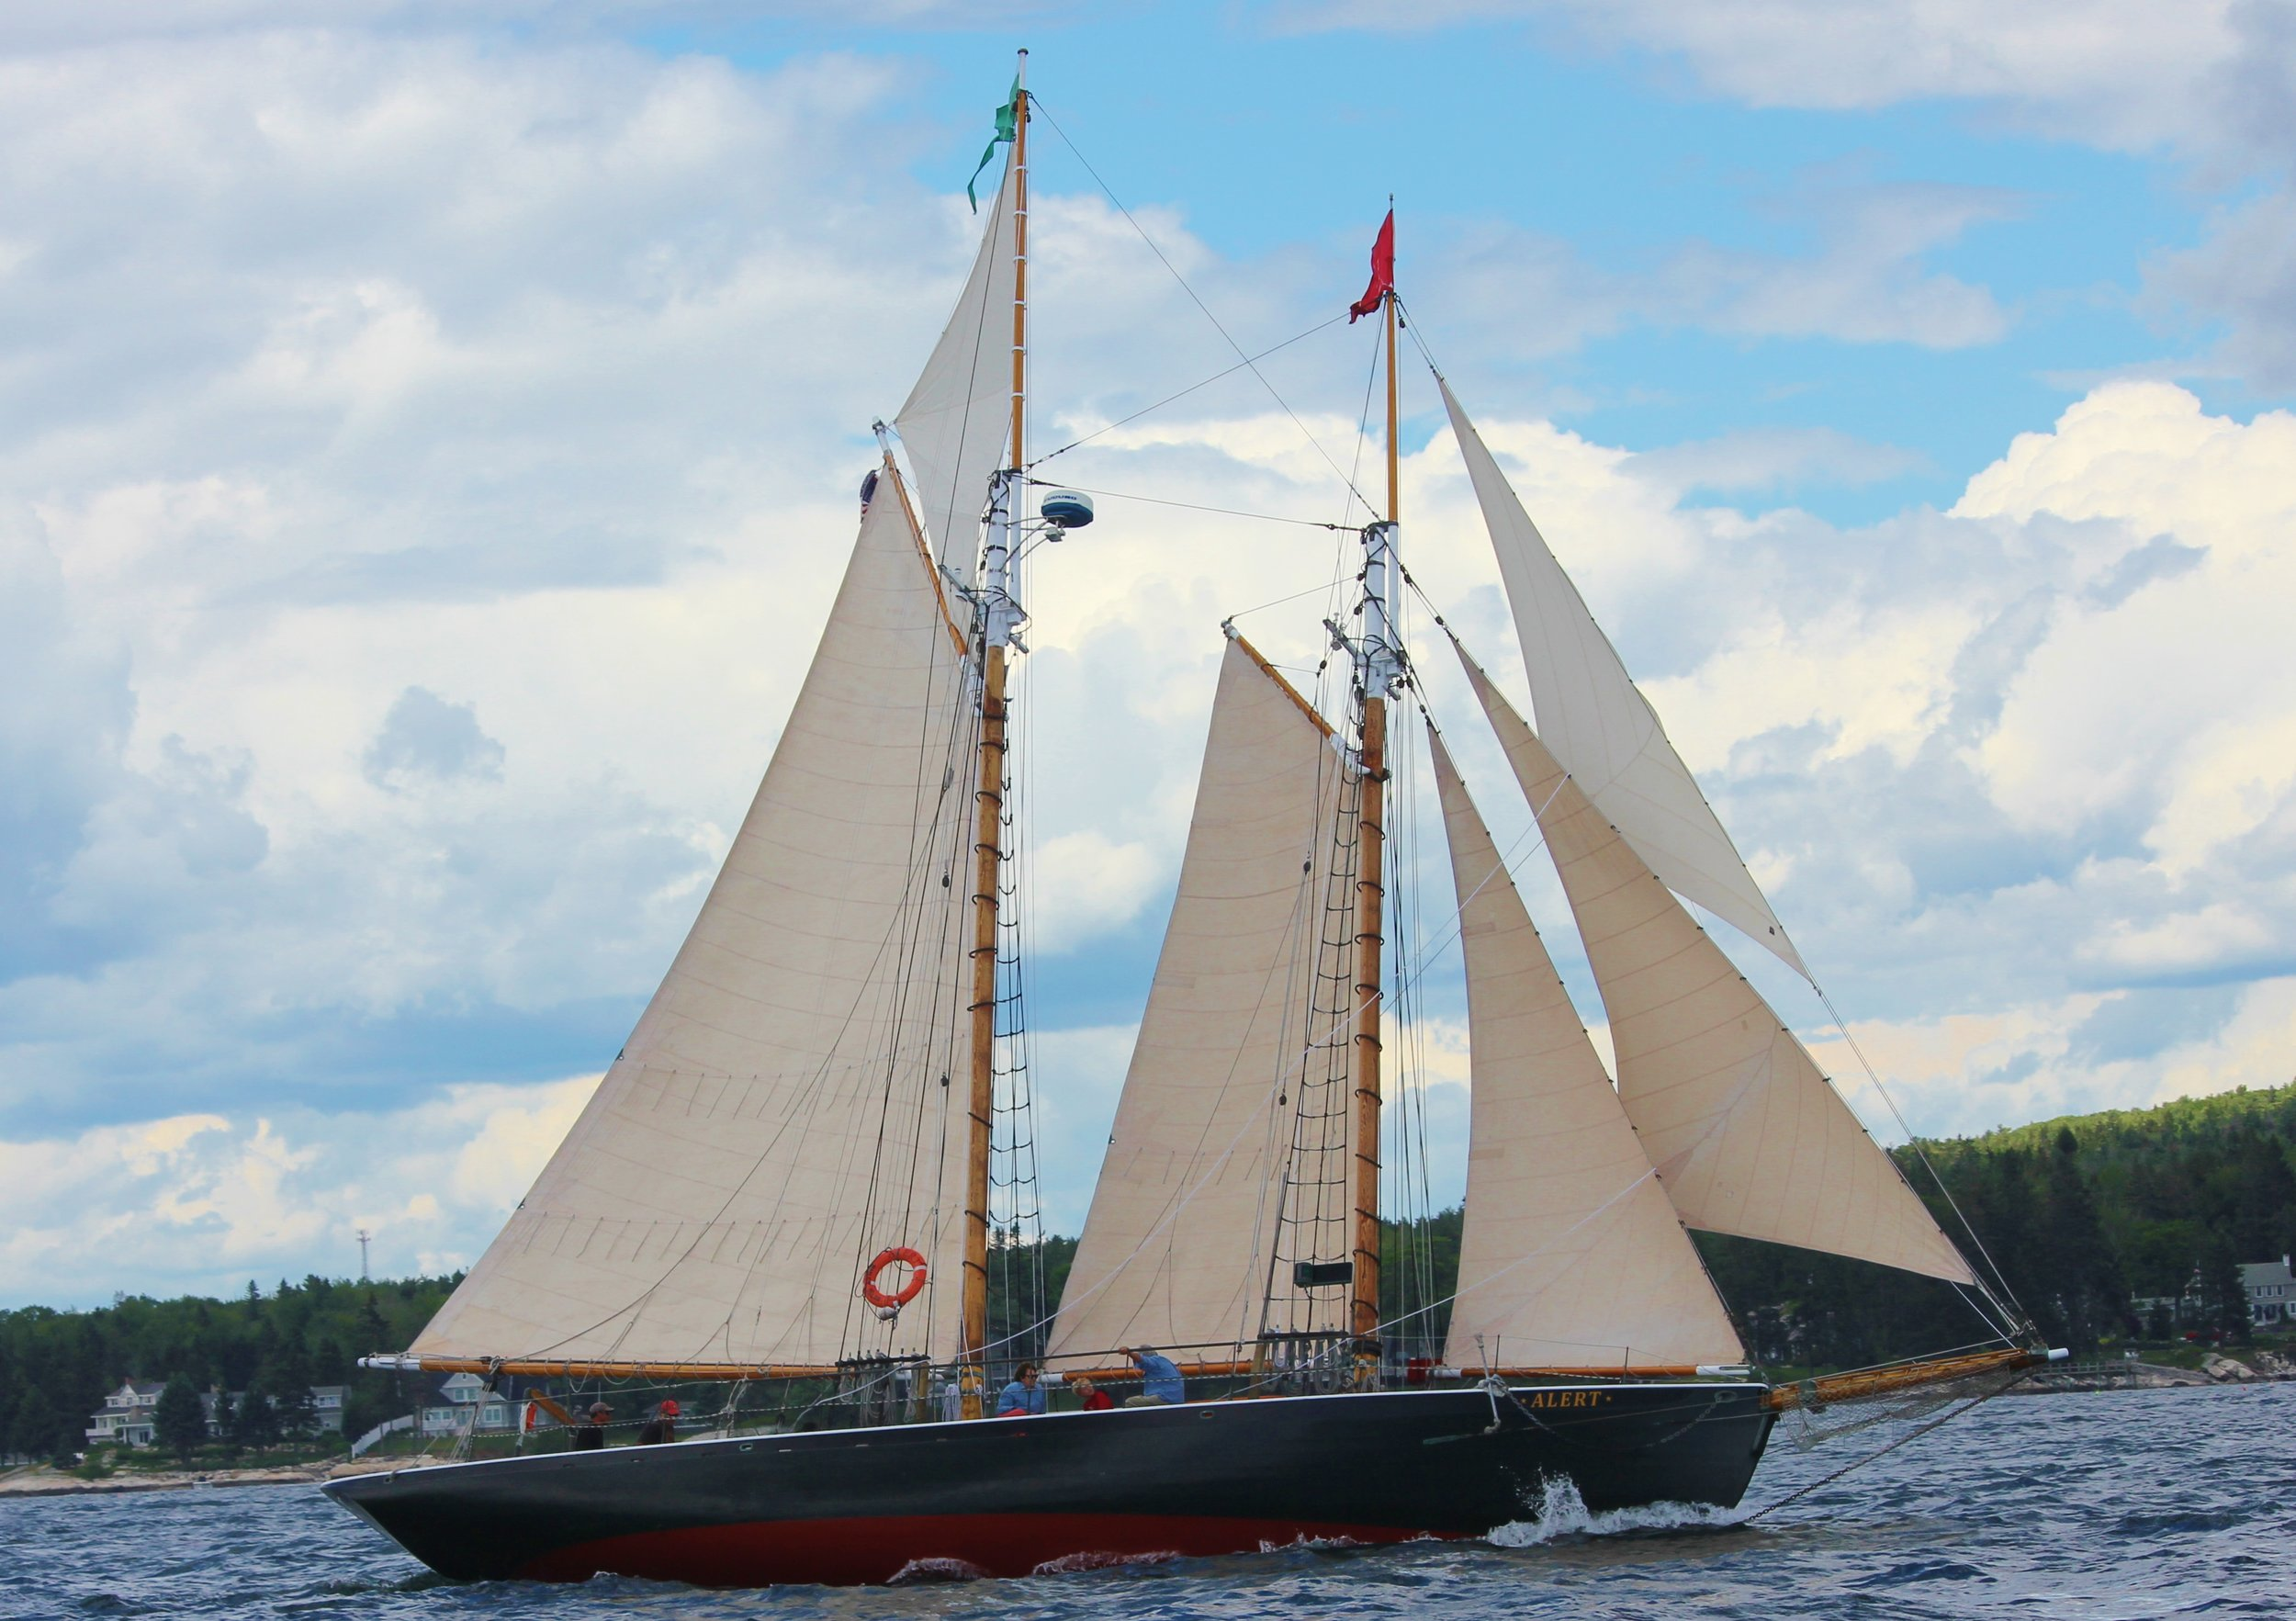 Schooner Alert Gets Ready to Enter the Harbor